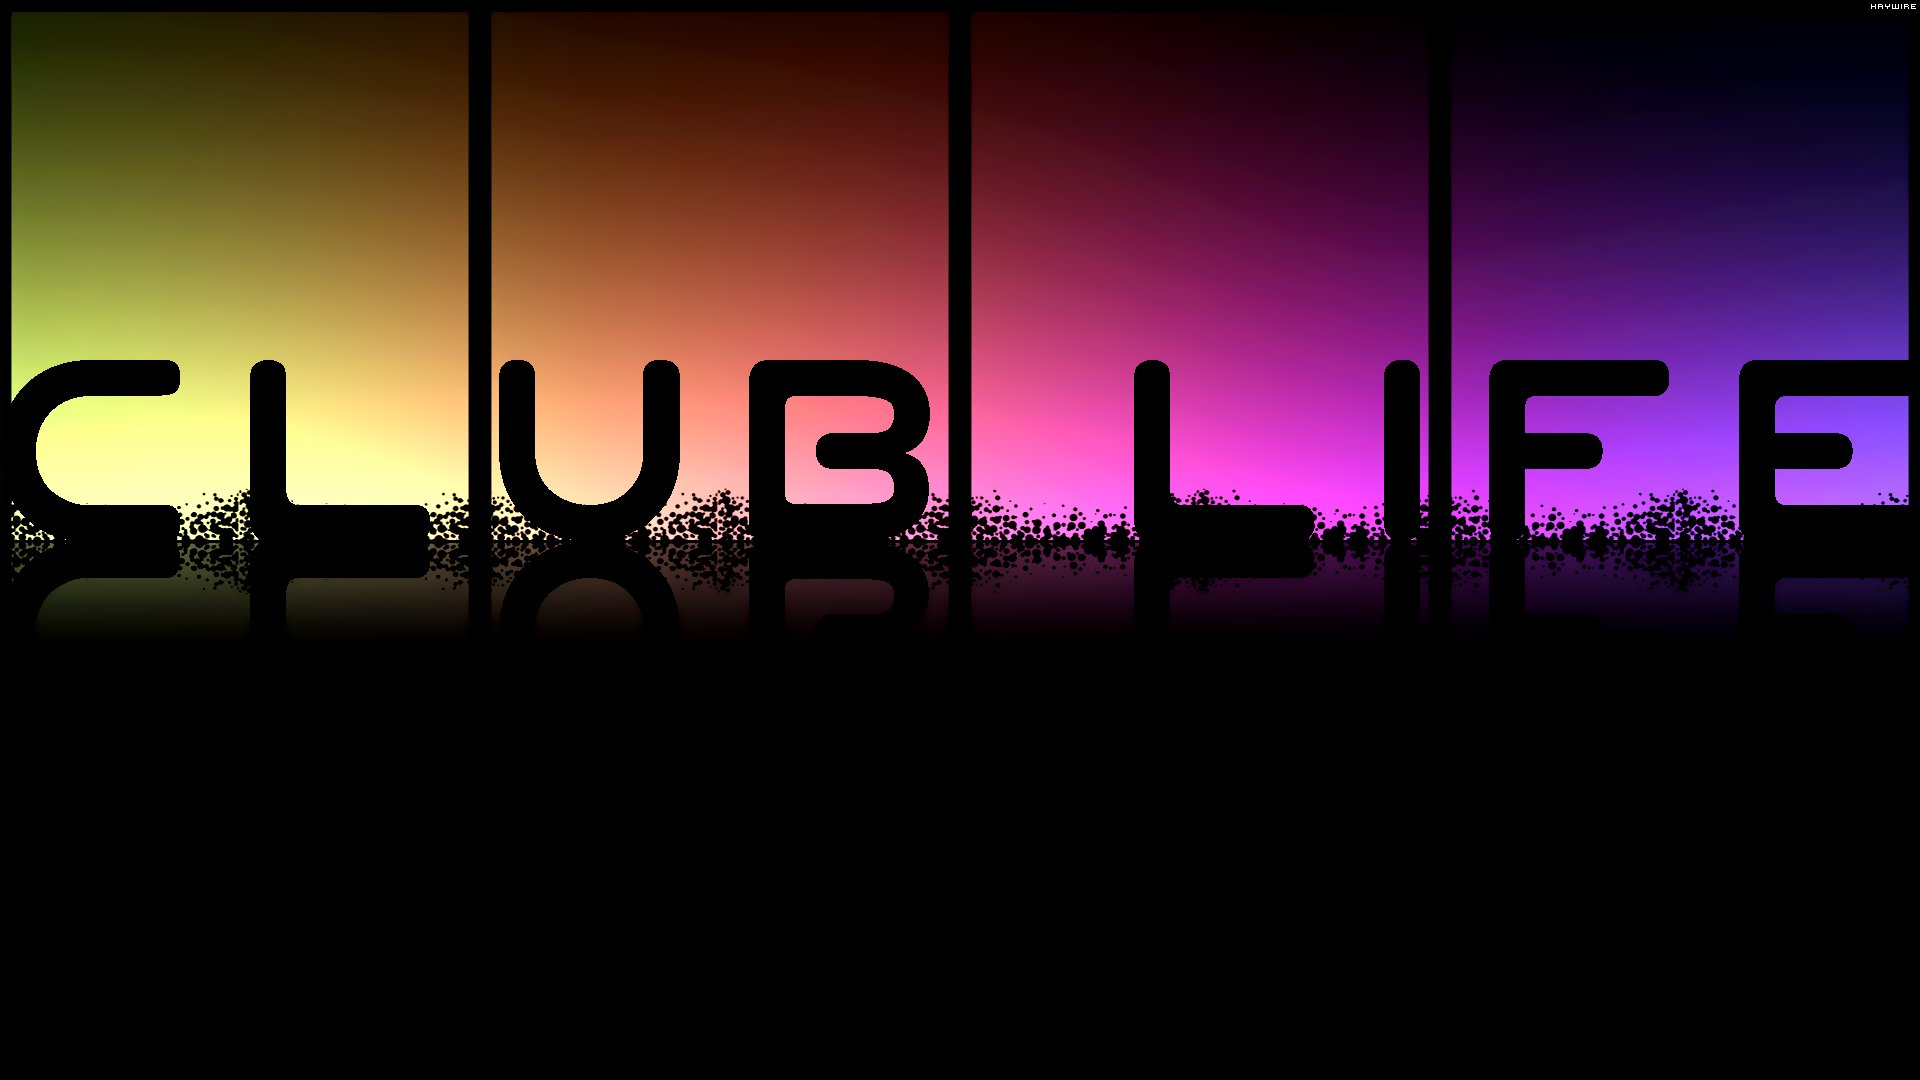 Club Wallpaper Wallpapersafari